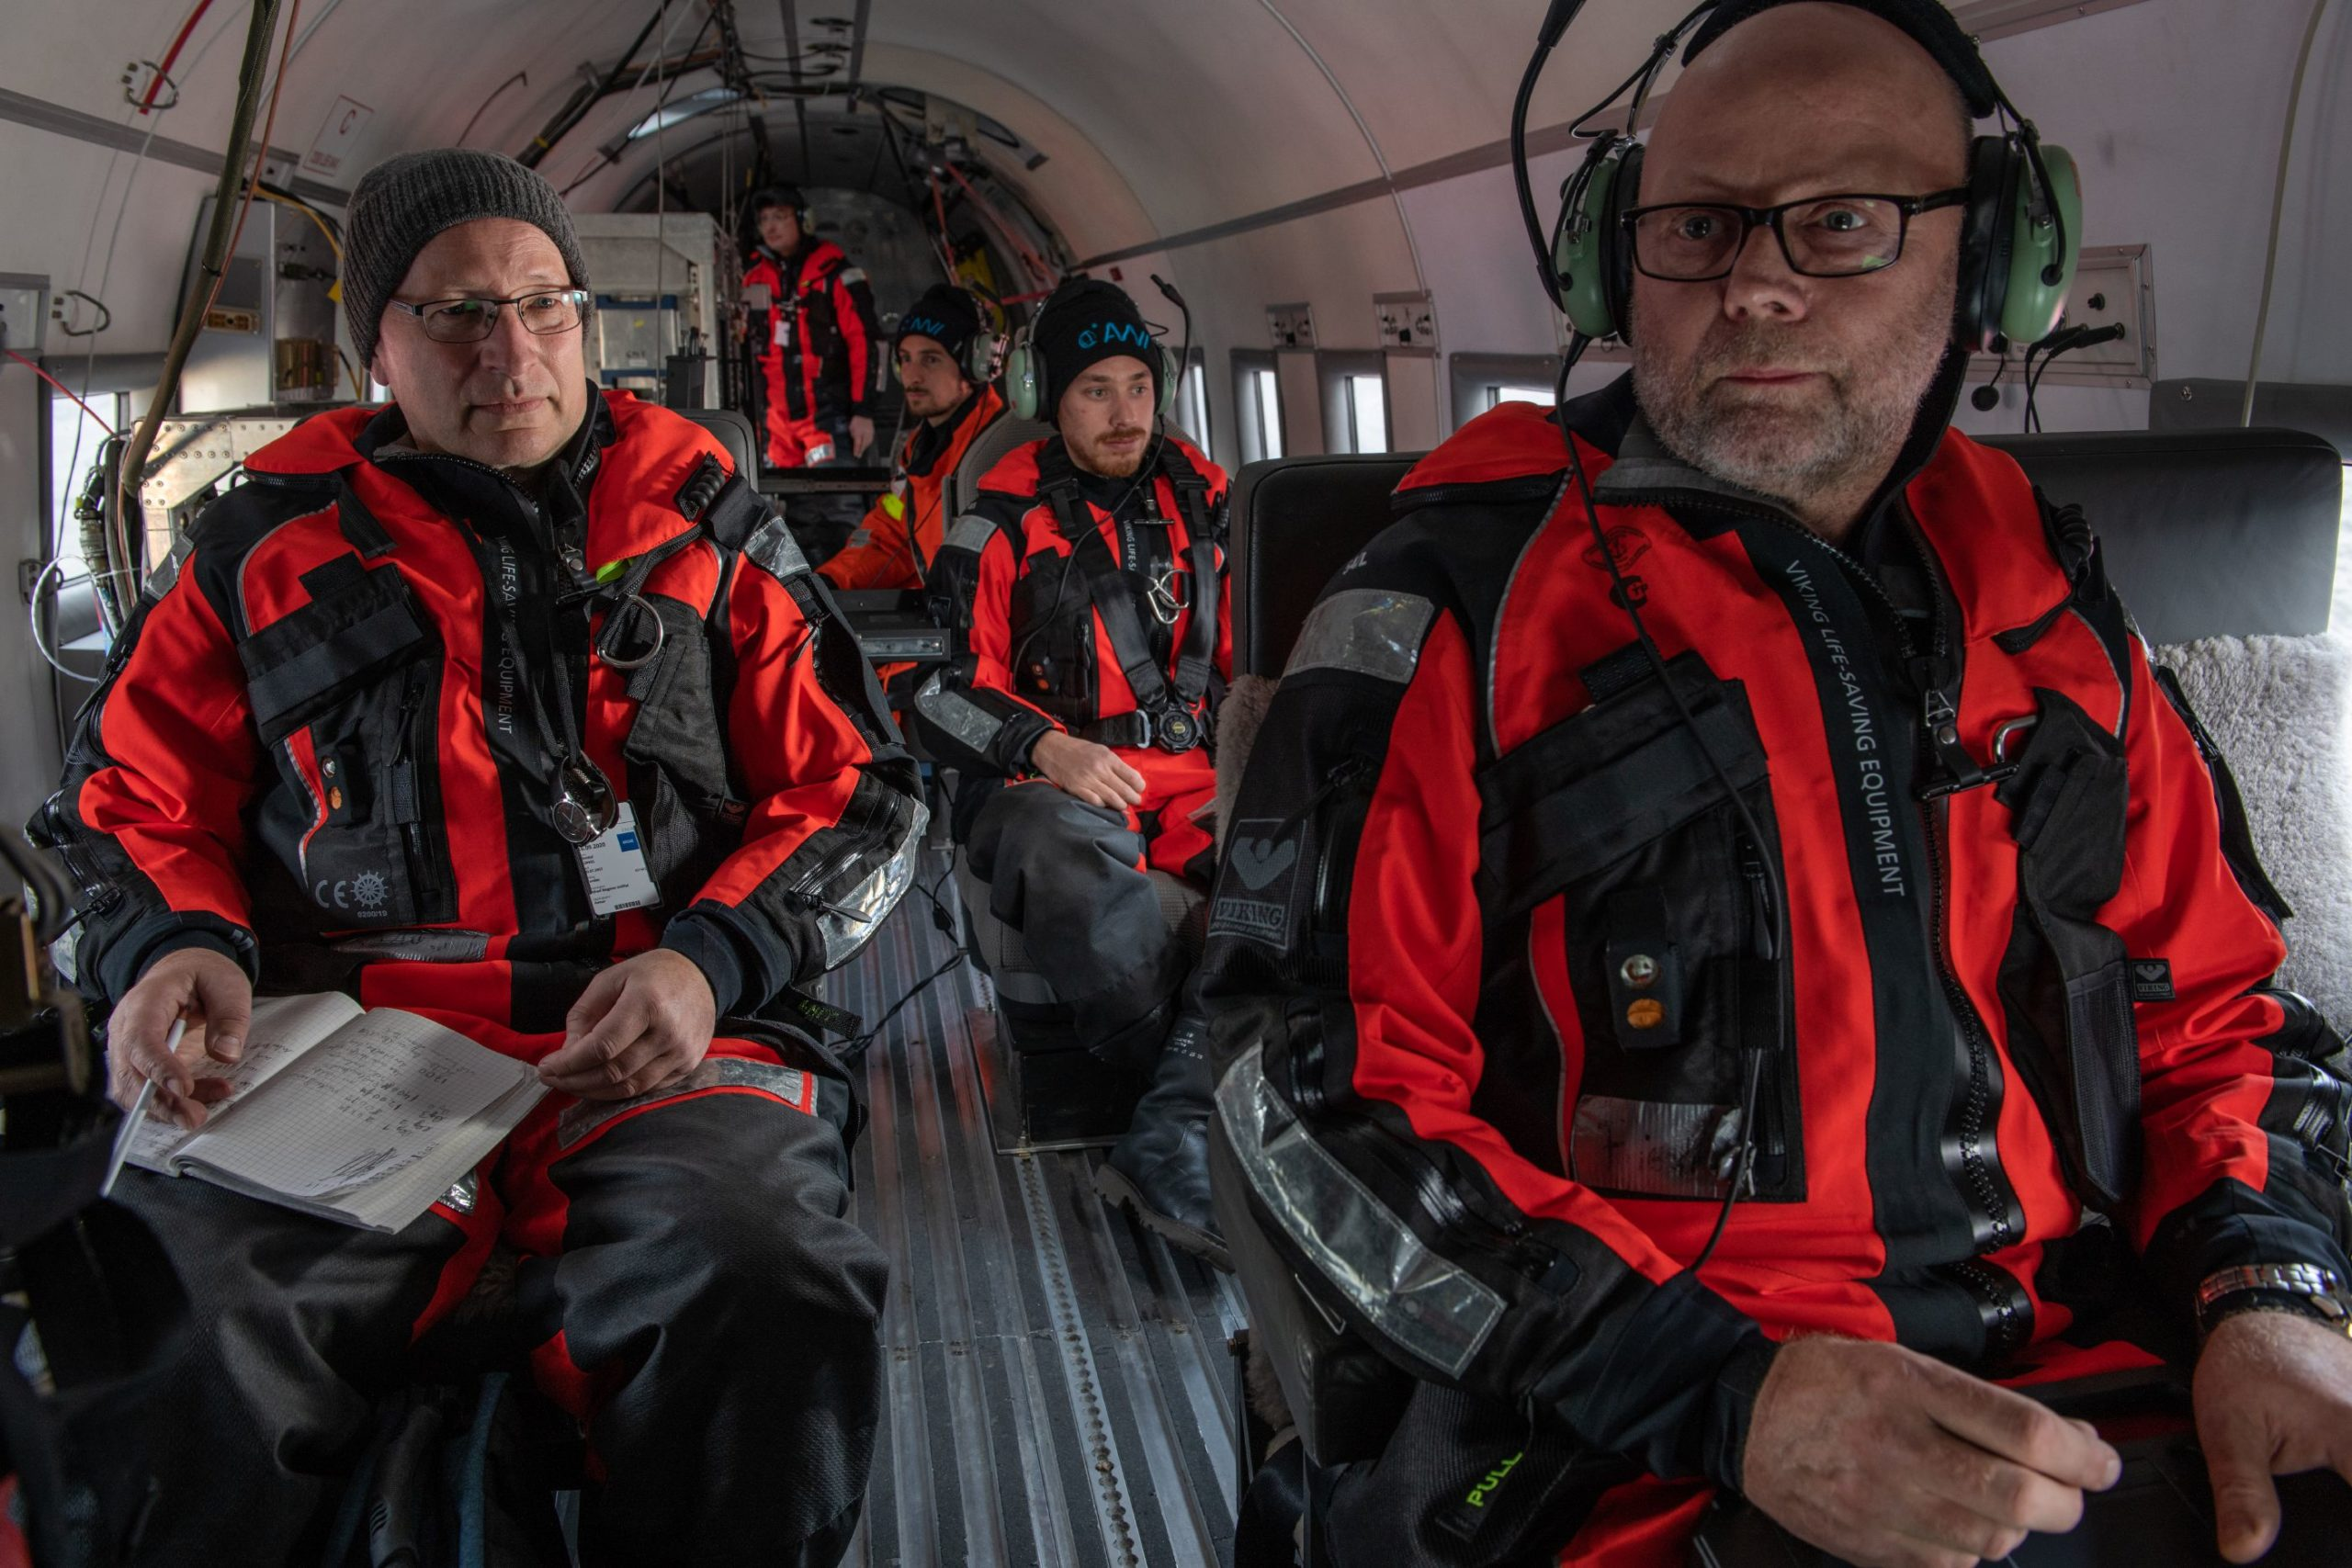 Portrait of Polar 5 atmospheric team during MOSAiC aircraft campaign. From front to back: Friedhelm Jansen (r) , Christof Lüpkes (l) , Manuel Moser, Hanner Probst and Michael Schäfer.